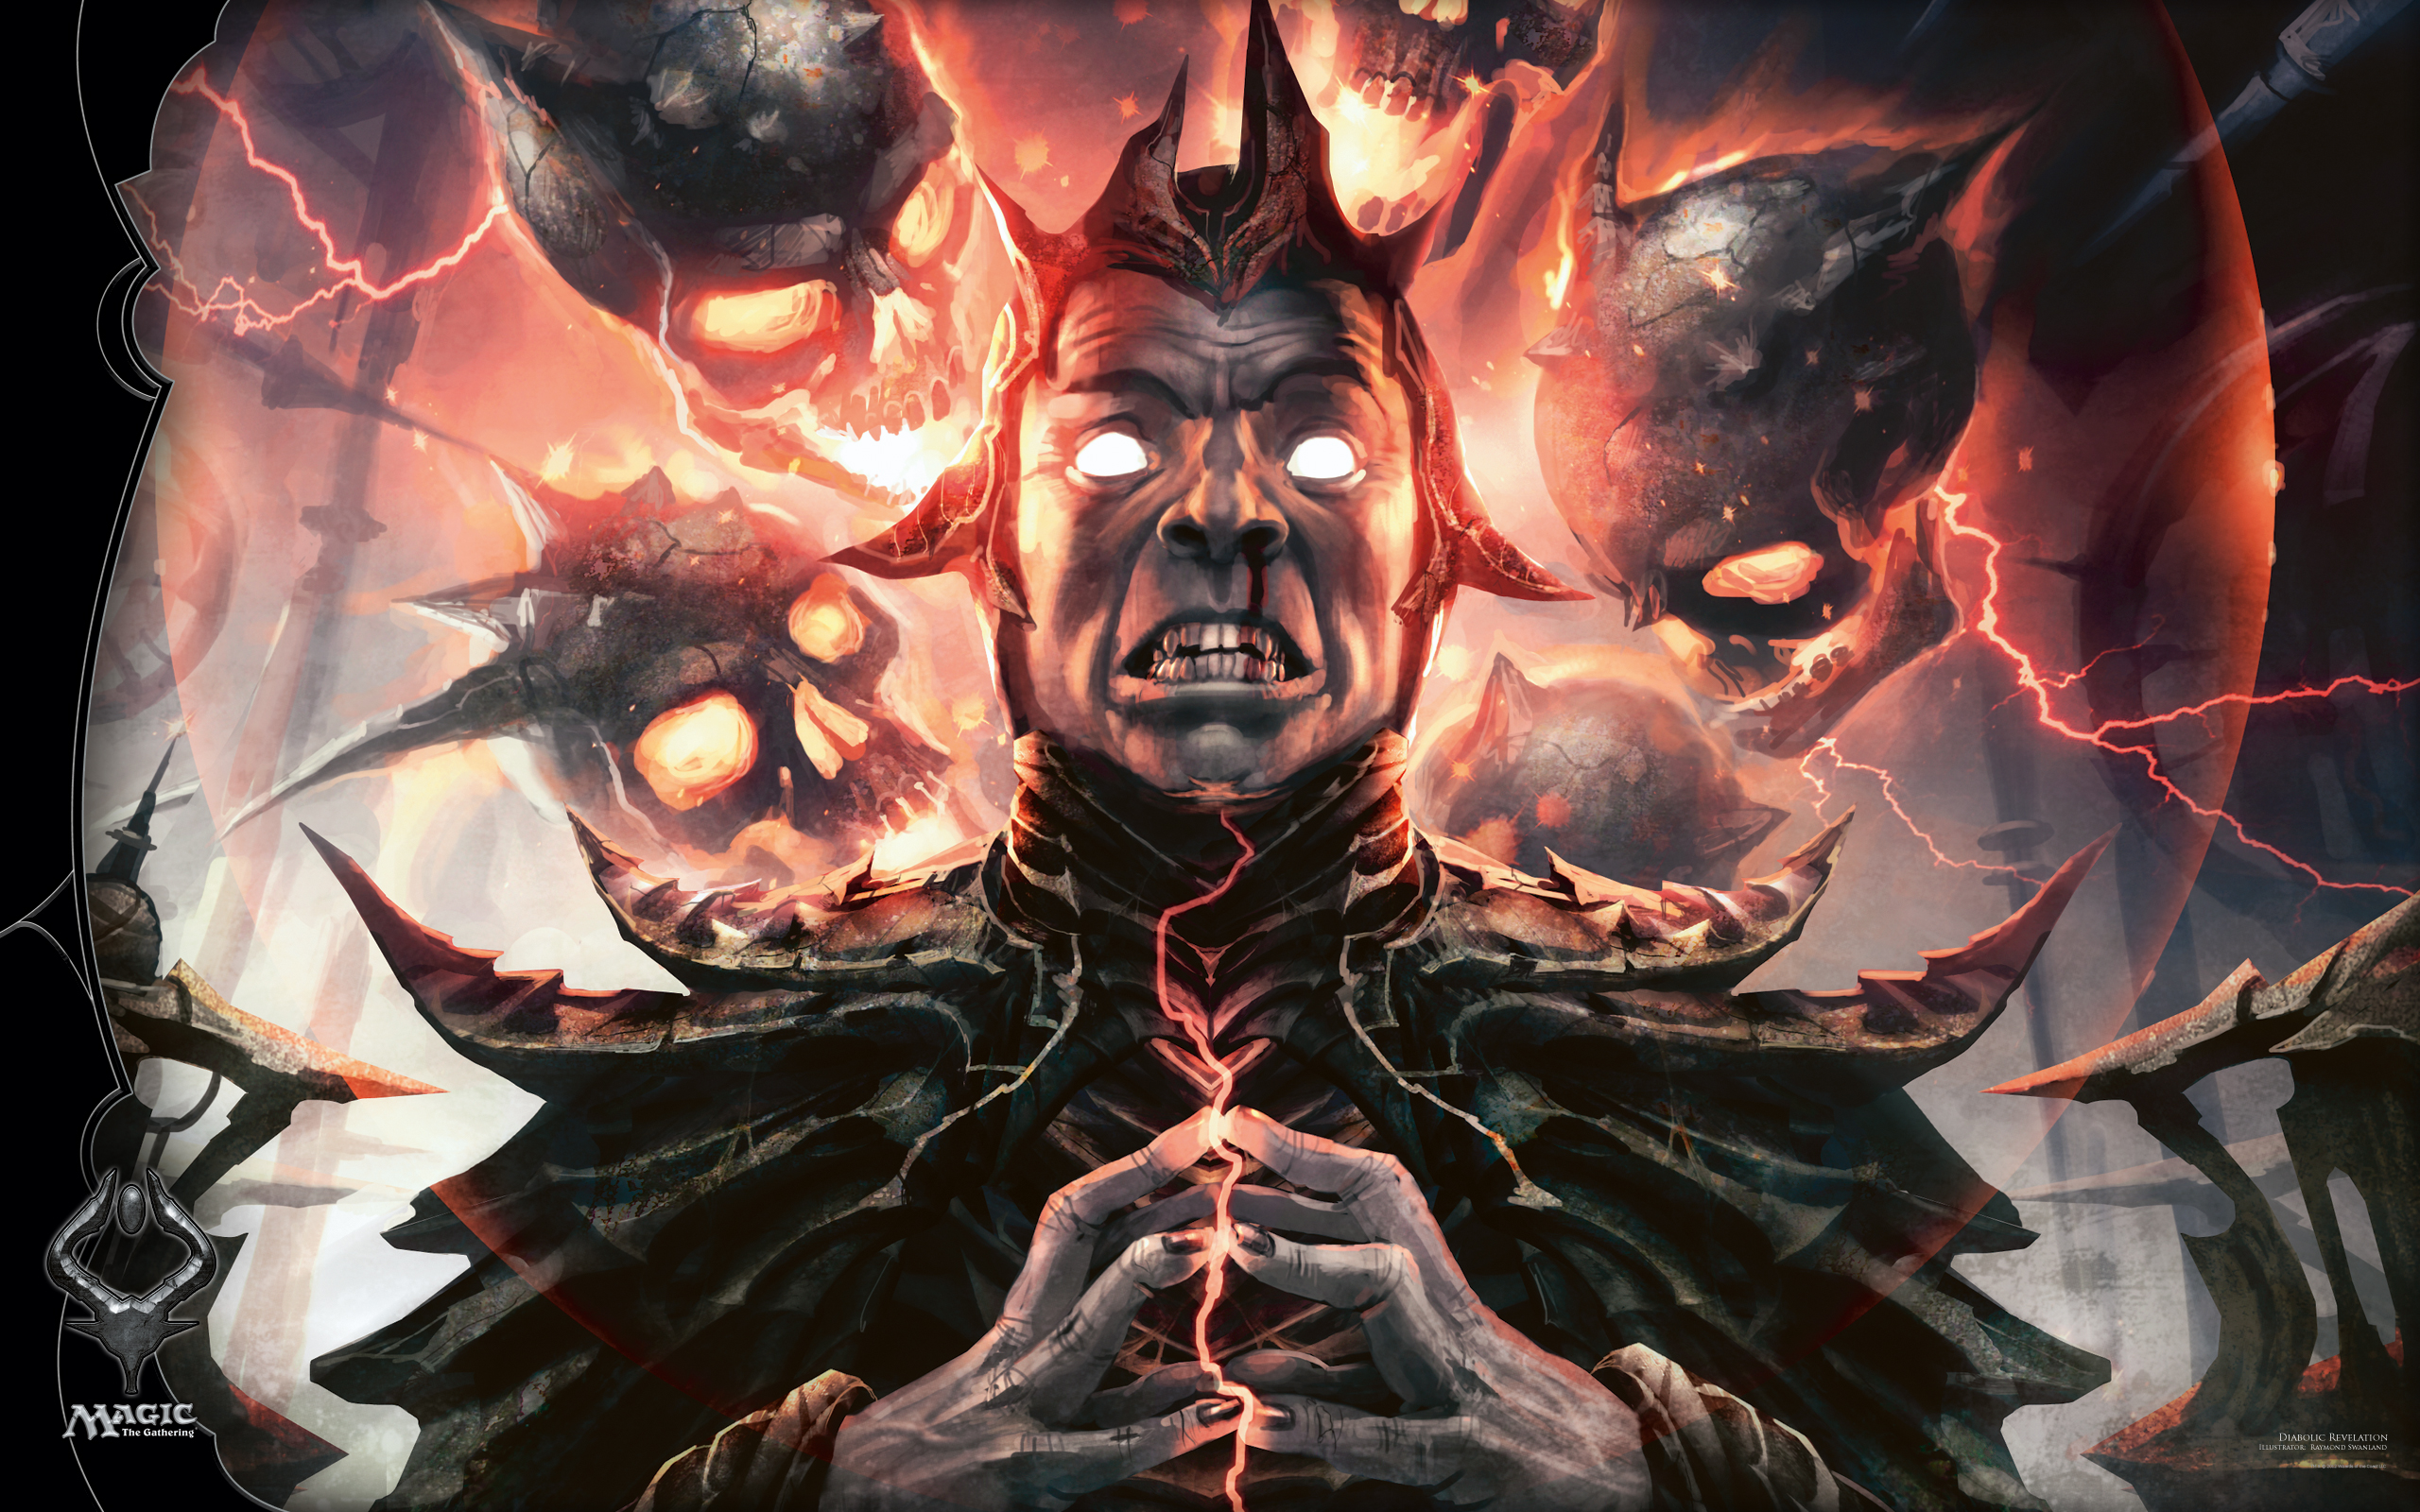 Magic: The Gathering · download Magic: The Gathering image